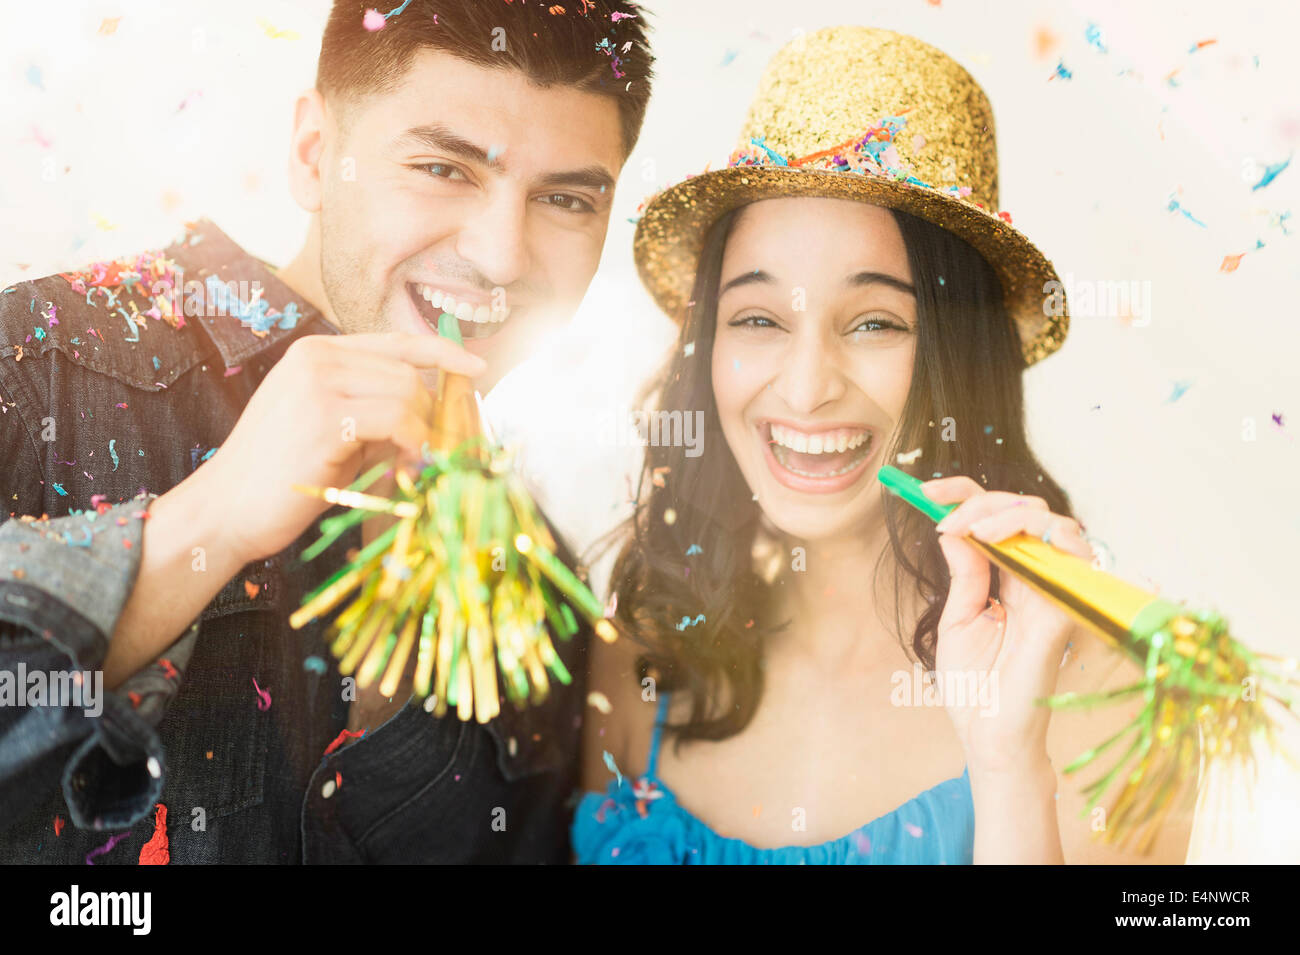 Young couple celebrating New Year's Eve - Stock Image